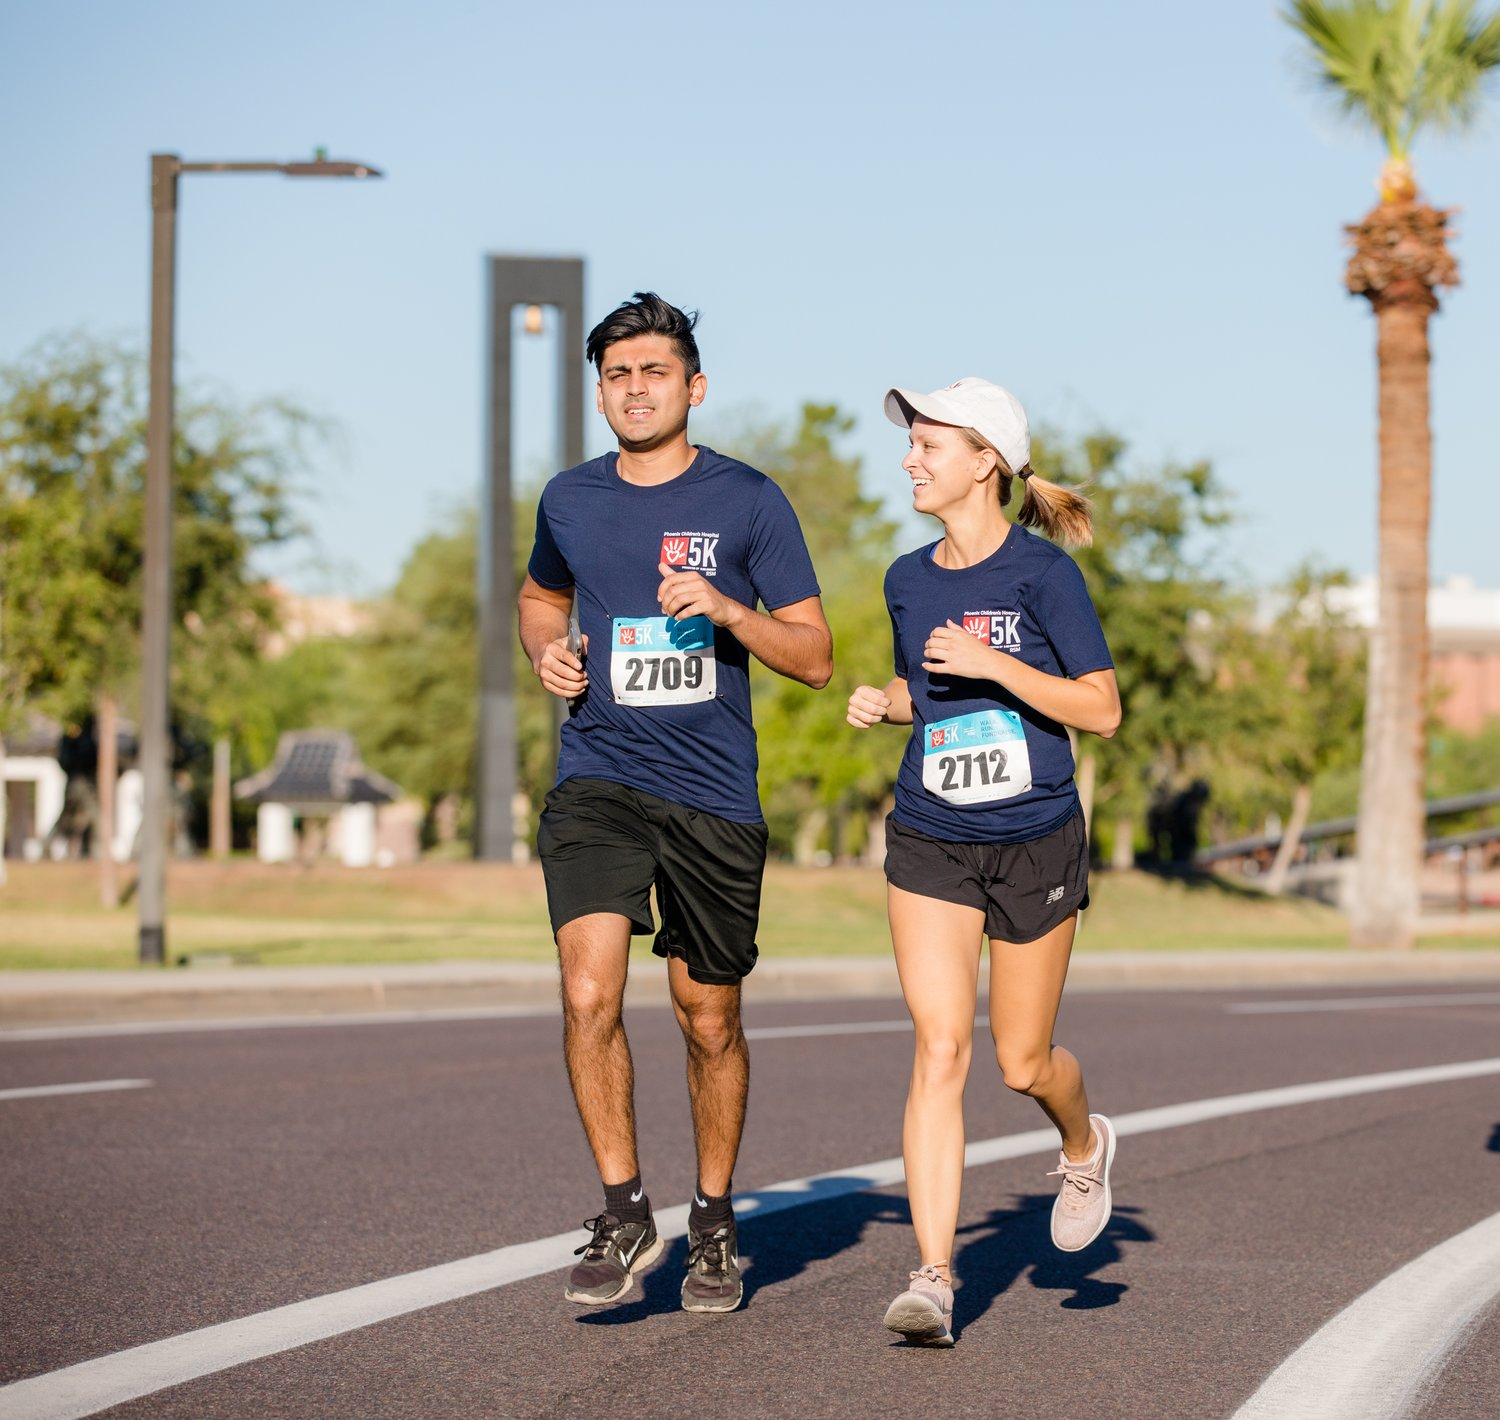 The Phoenix Children's Hospital 5K, Oct. 30-Nov. 1, can be done from any selected location, at one's own pace, while safely distancing.